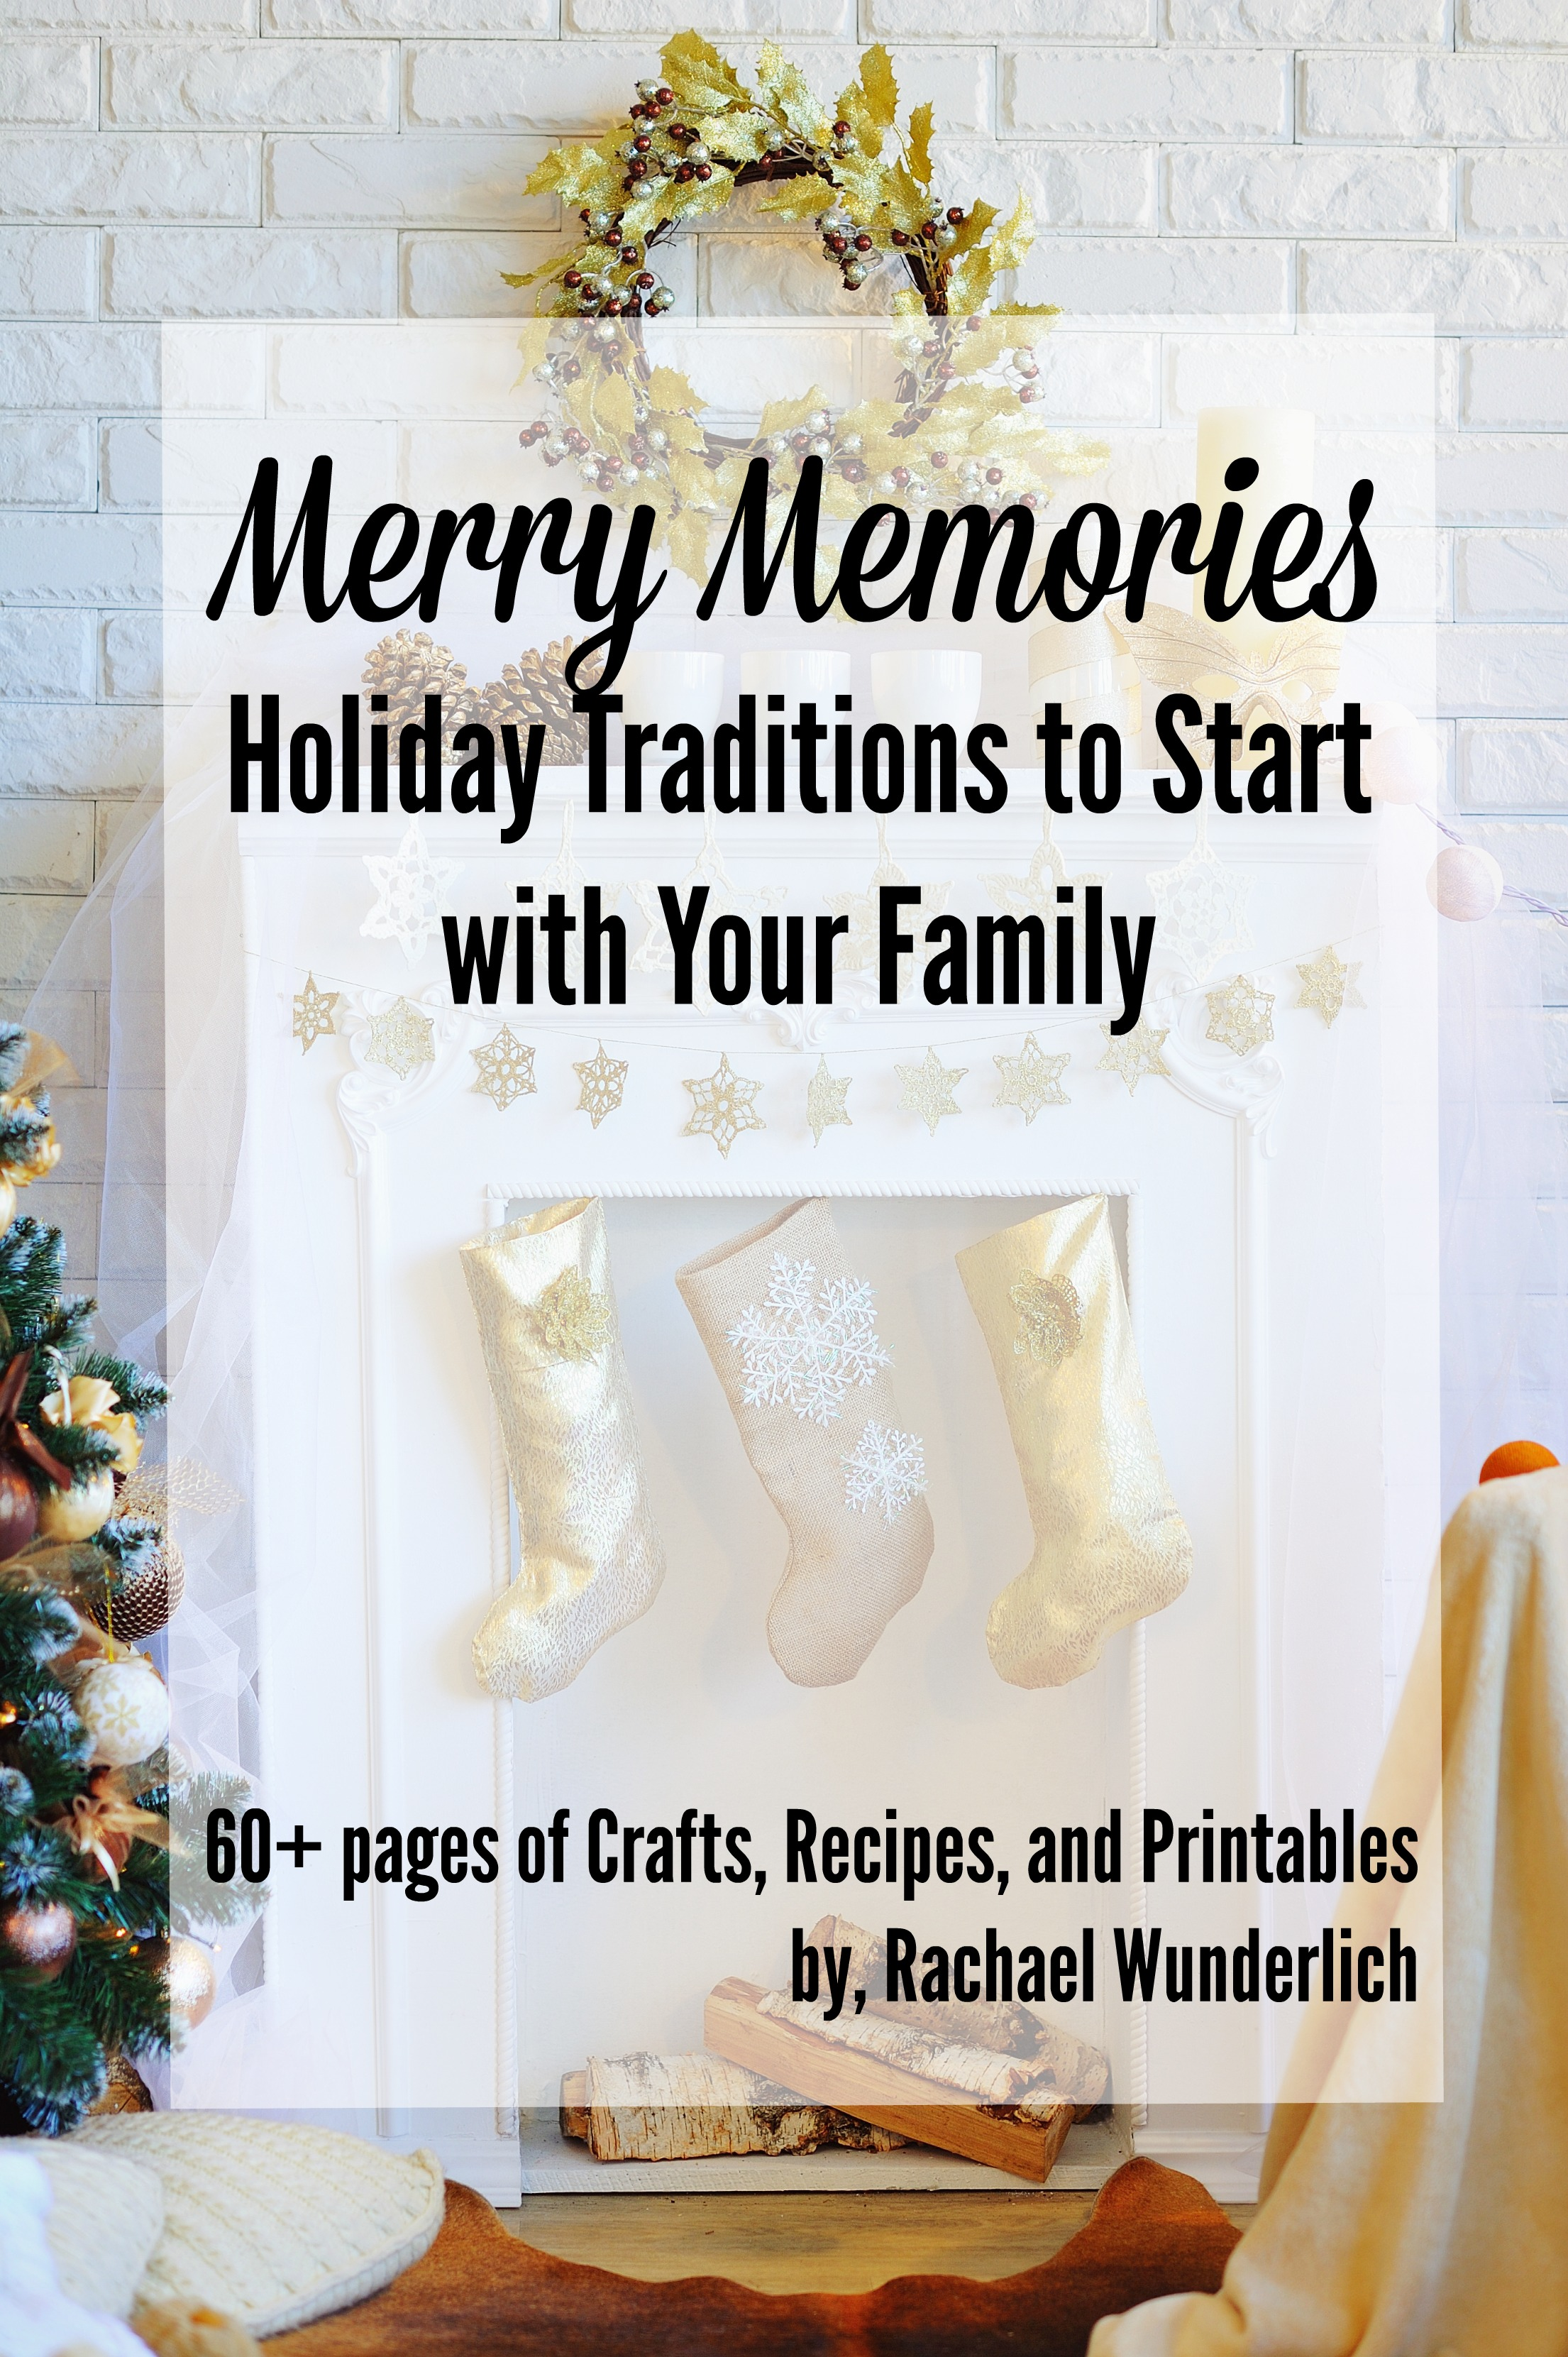 merrymemoriescover